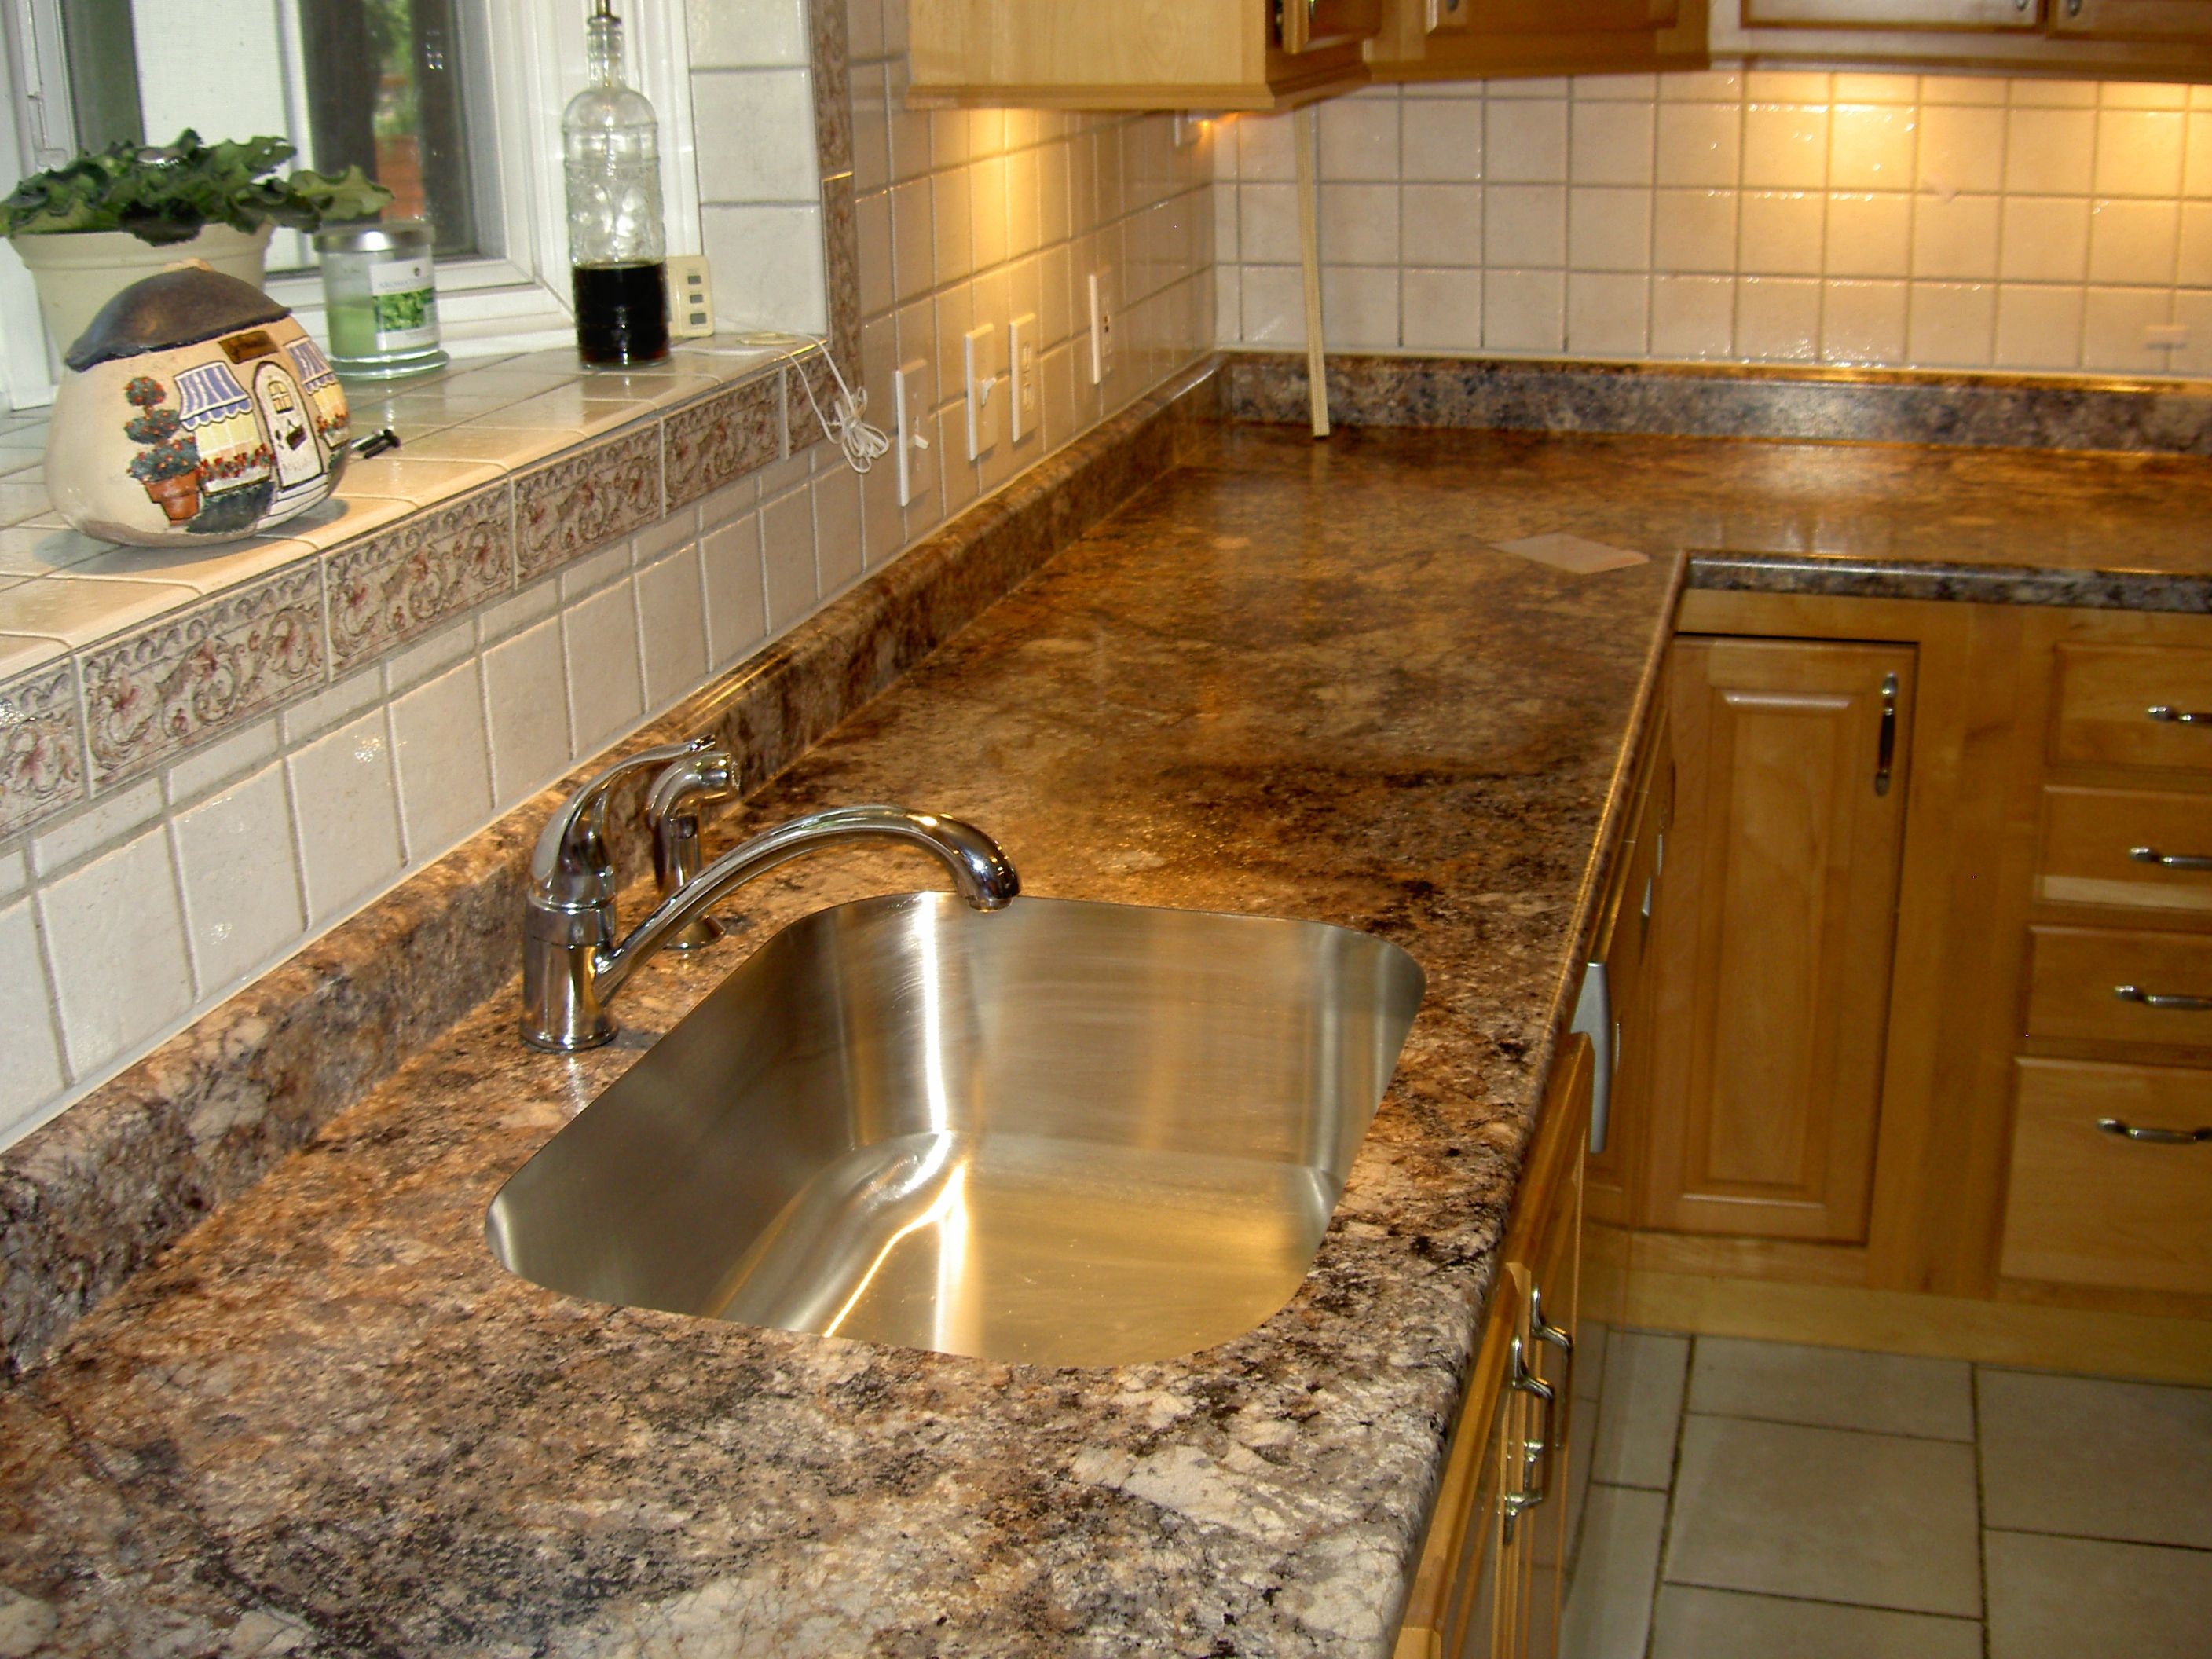 Saving Money With Laminate Countertops Sheets They Look Awesome Mobile Home Renovation Ideas